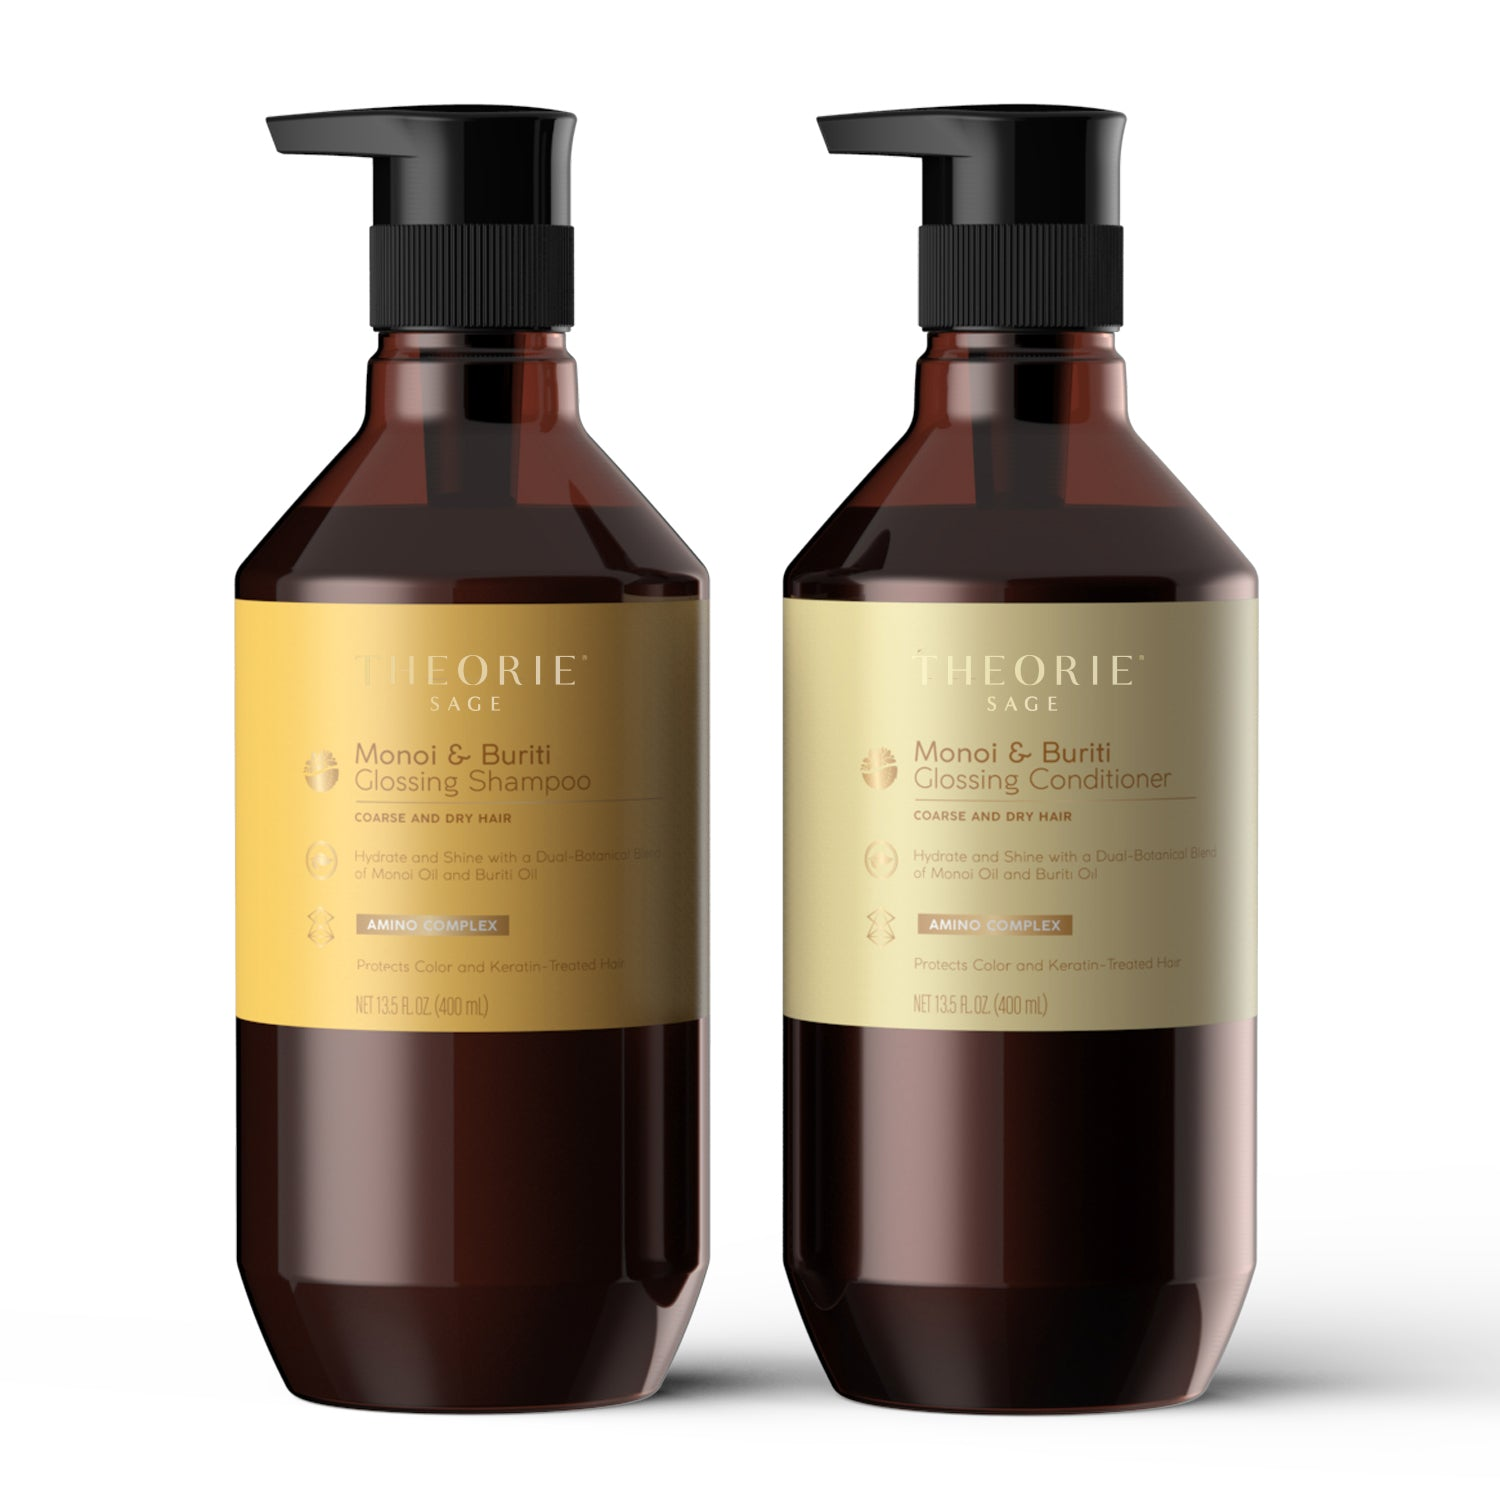 Theorie: Sage -  Monoi & Buriti Oil Glossing Shampoo & Condition Set